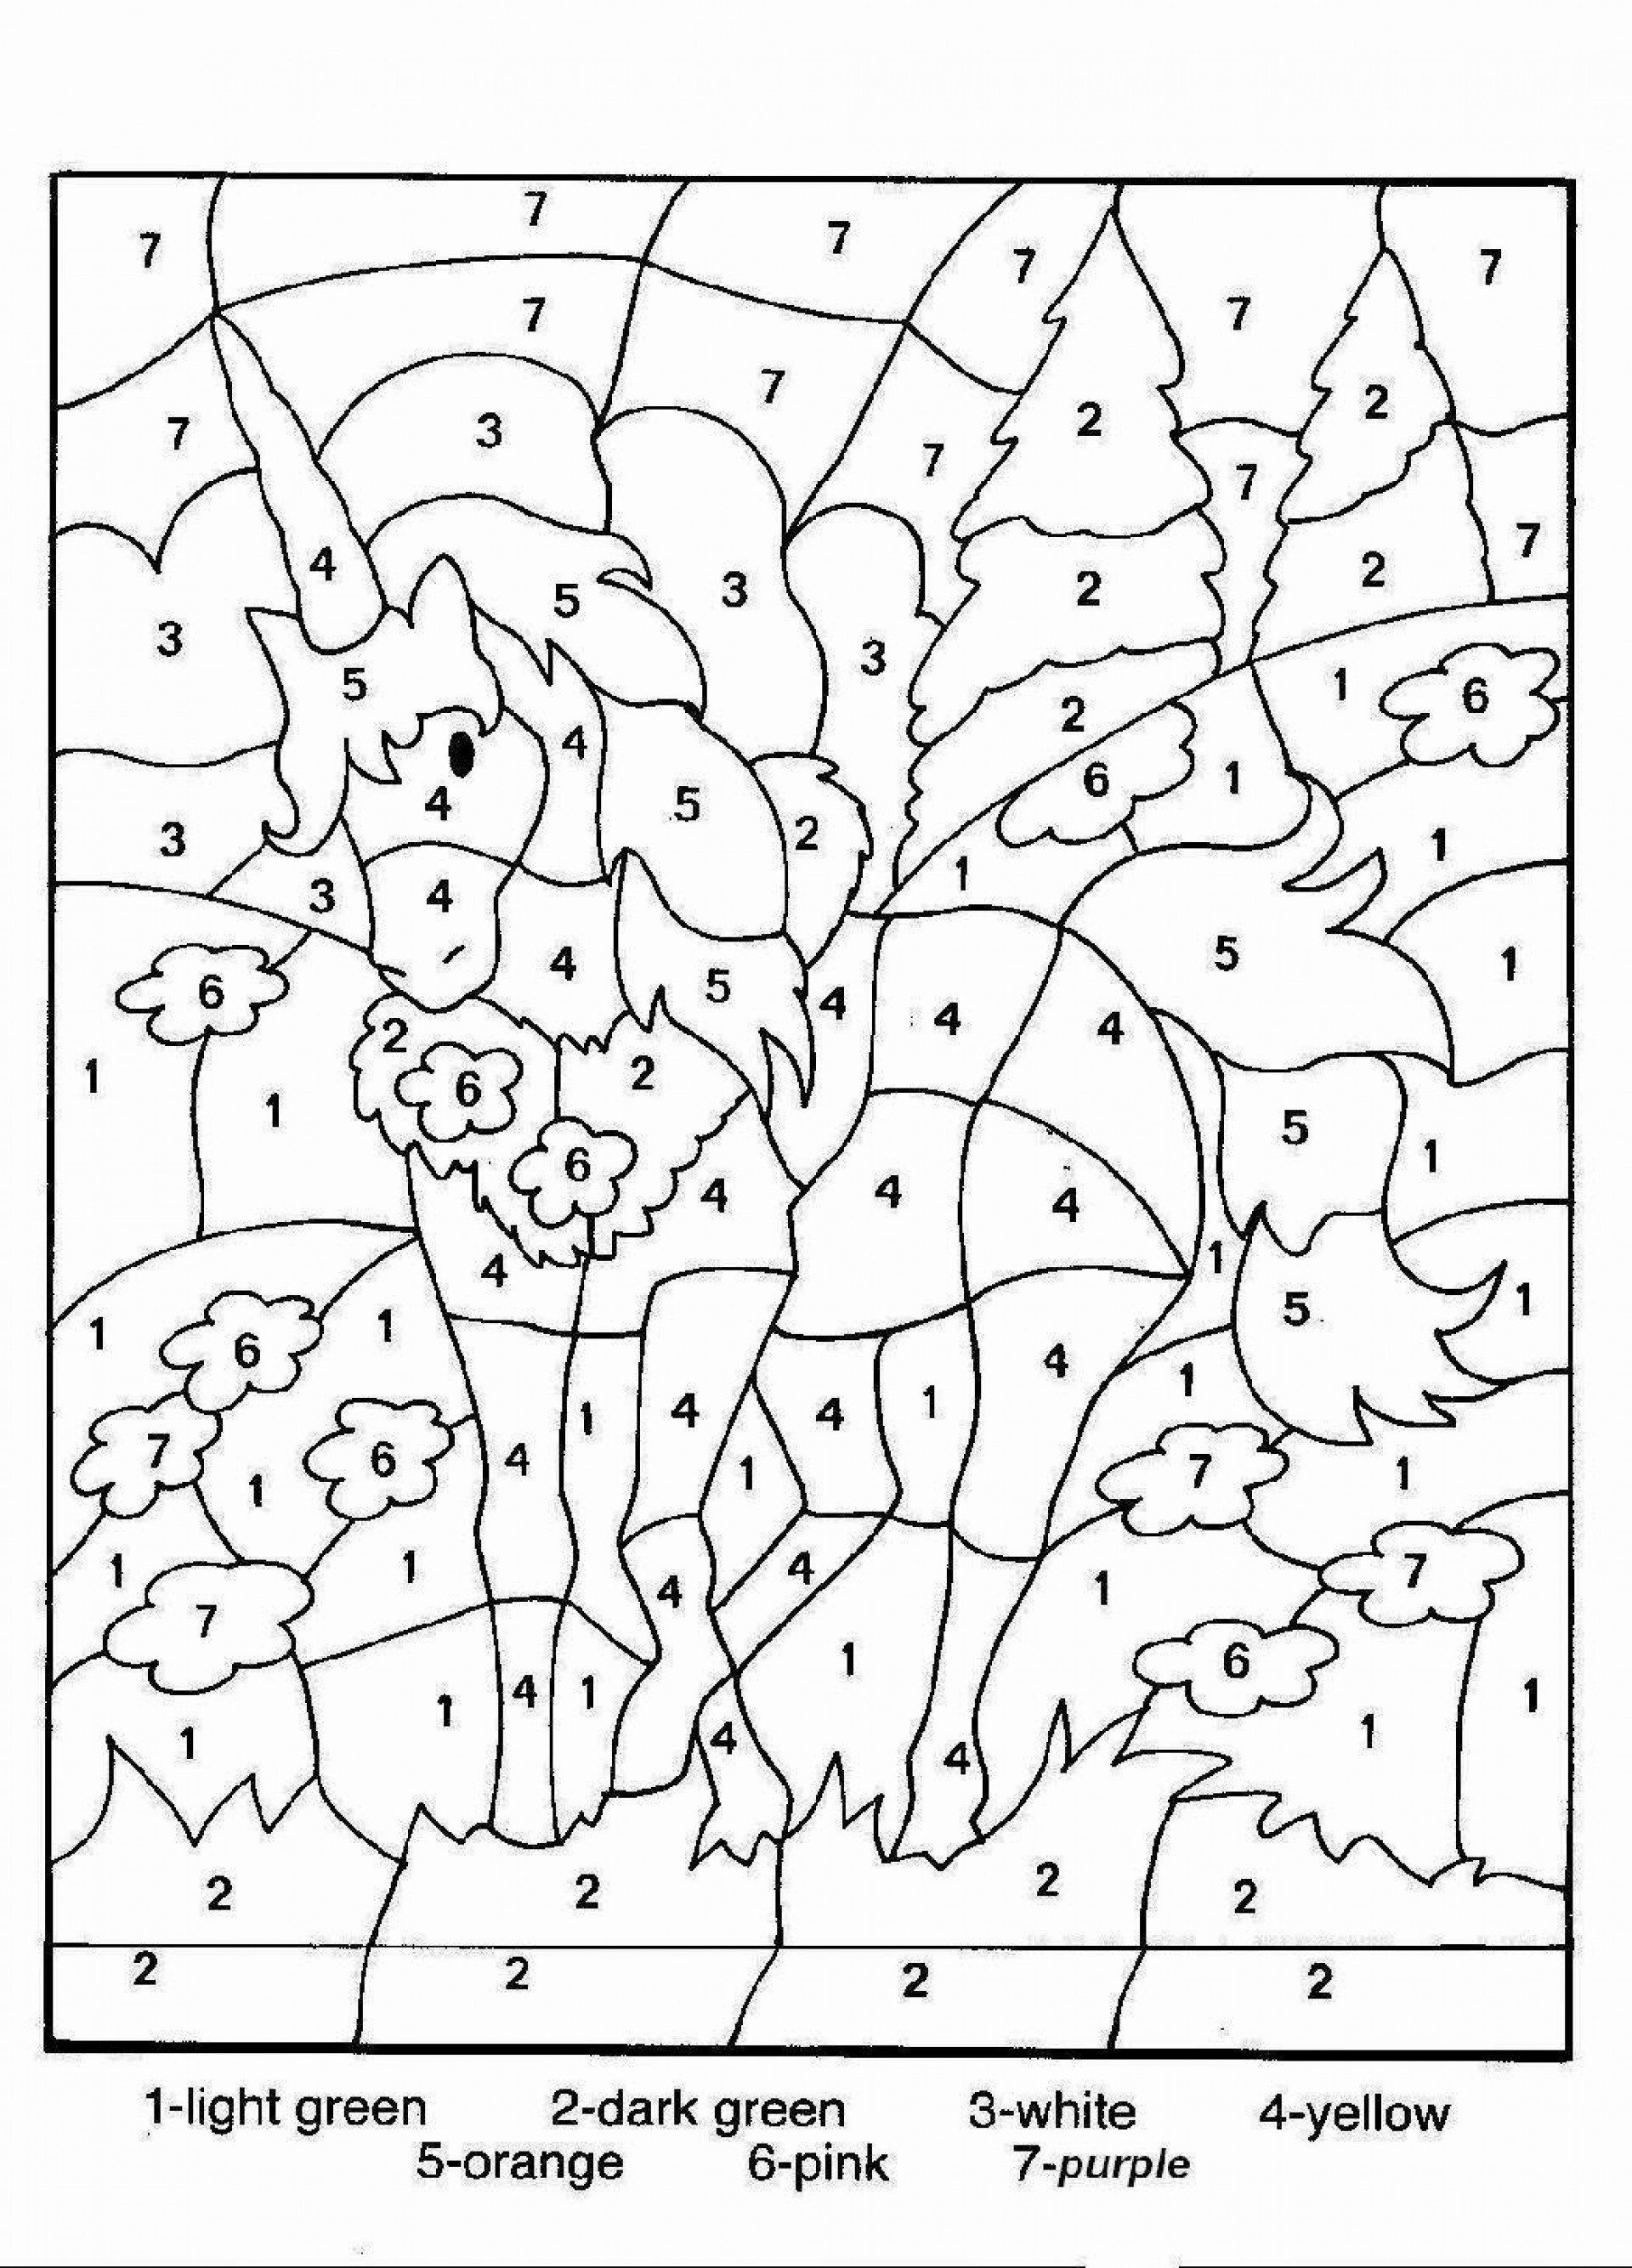 Math Coloring Worksheets 4th Grade Lovely Math Coloring Pages For Nd Grade Beautiful New 4th Math Coloring Worksheets Math Coloring Christmas Math Worksheets